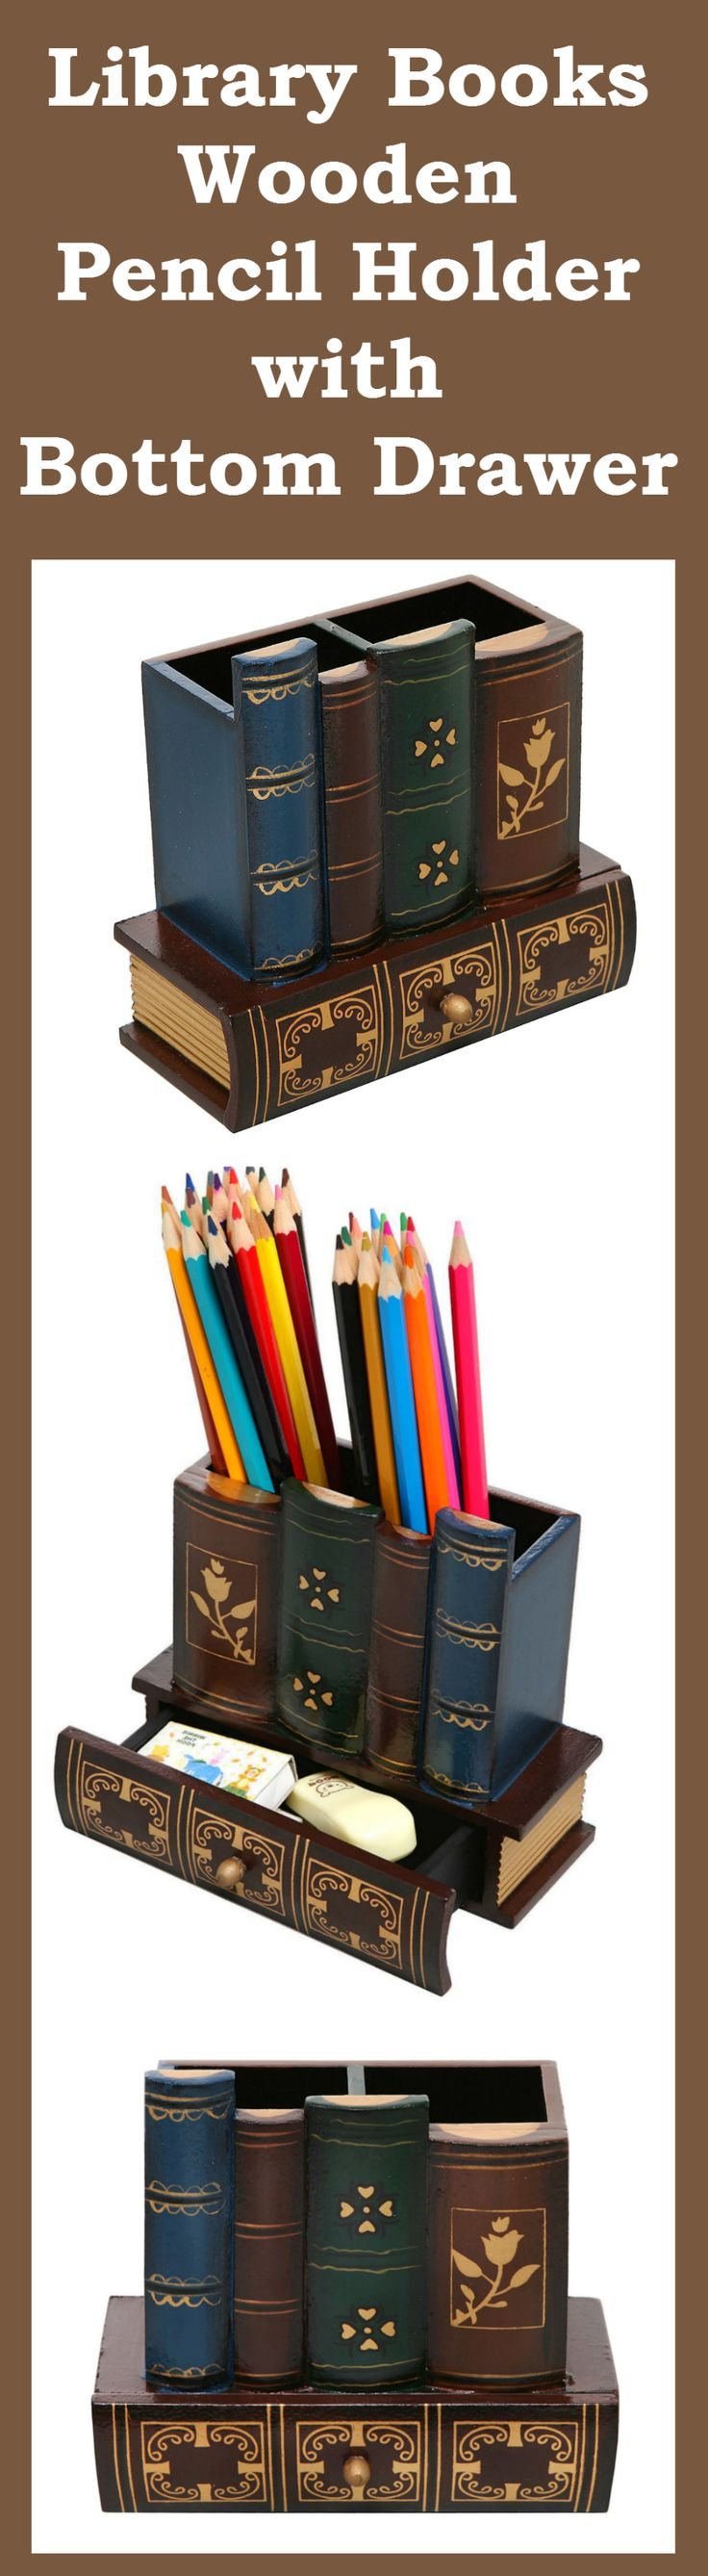 20 pencil holders ideas on pinterest without signing up